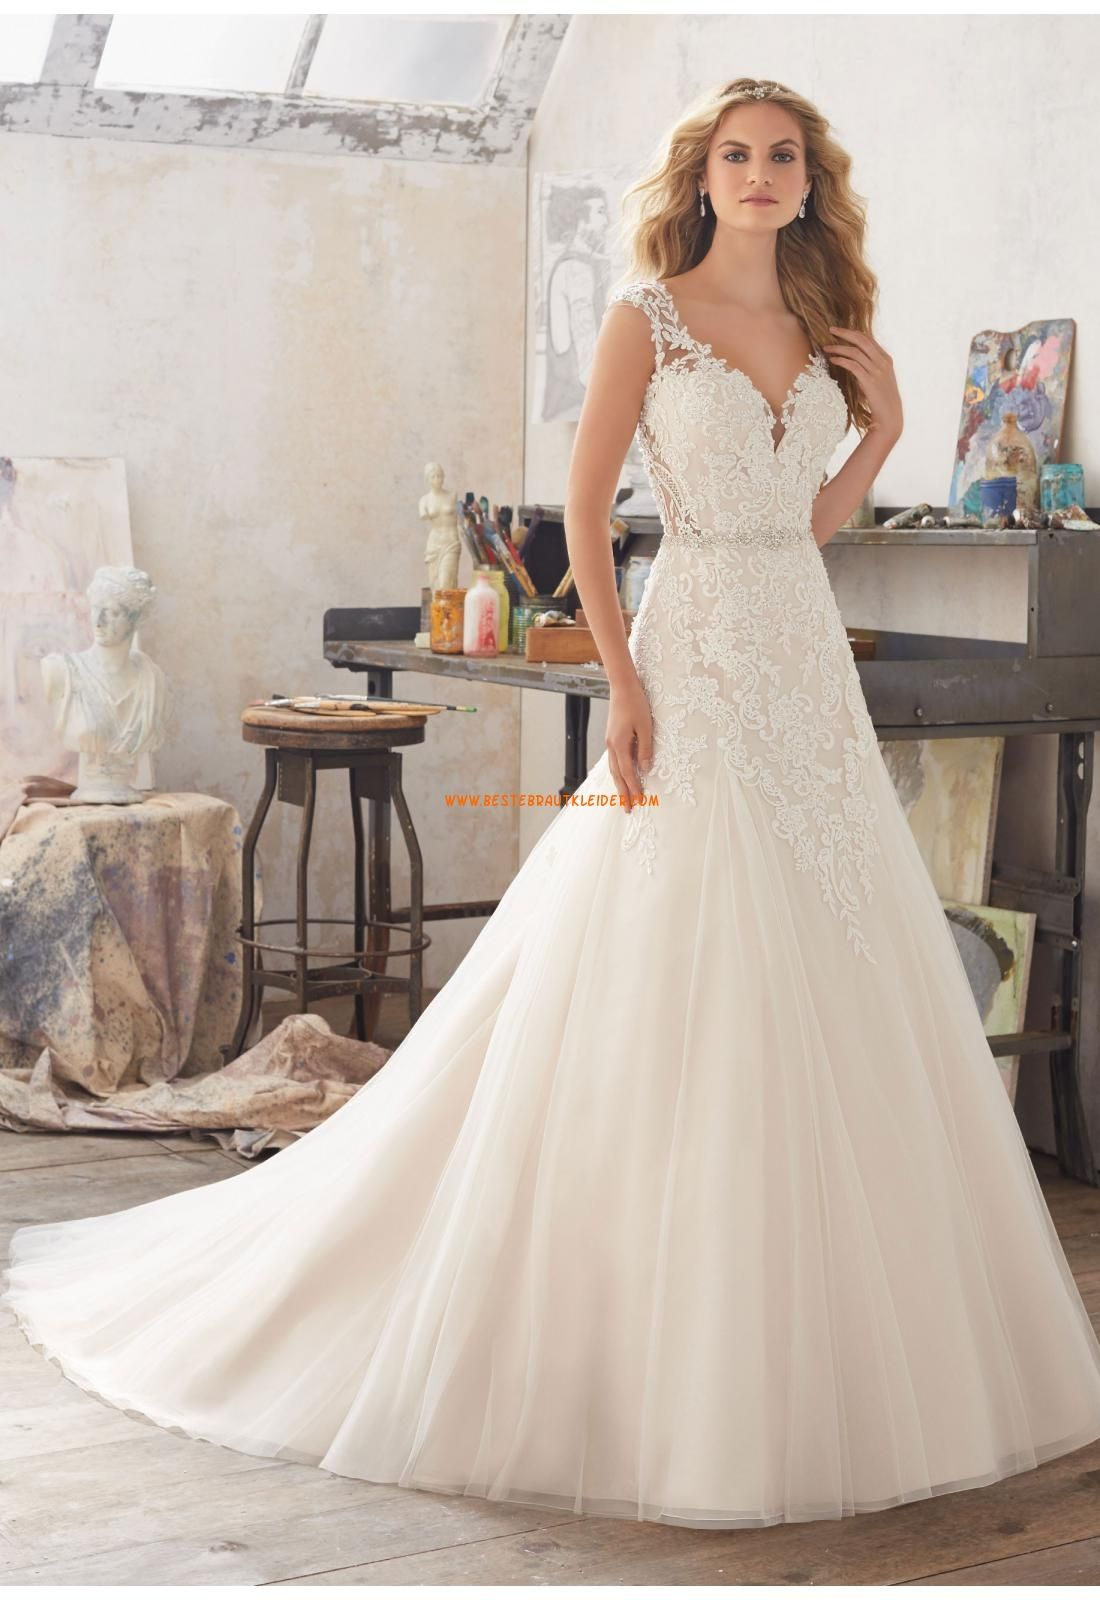 Wedding Gown Gallery | Gowns, Weddings and Wedding dress